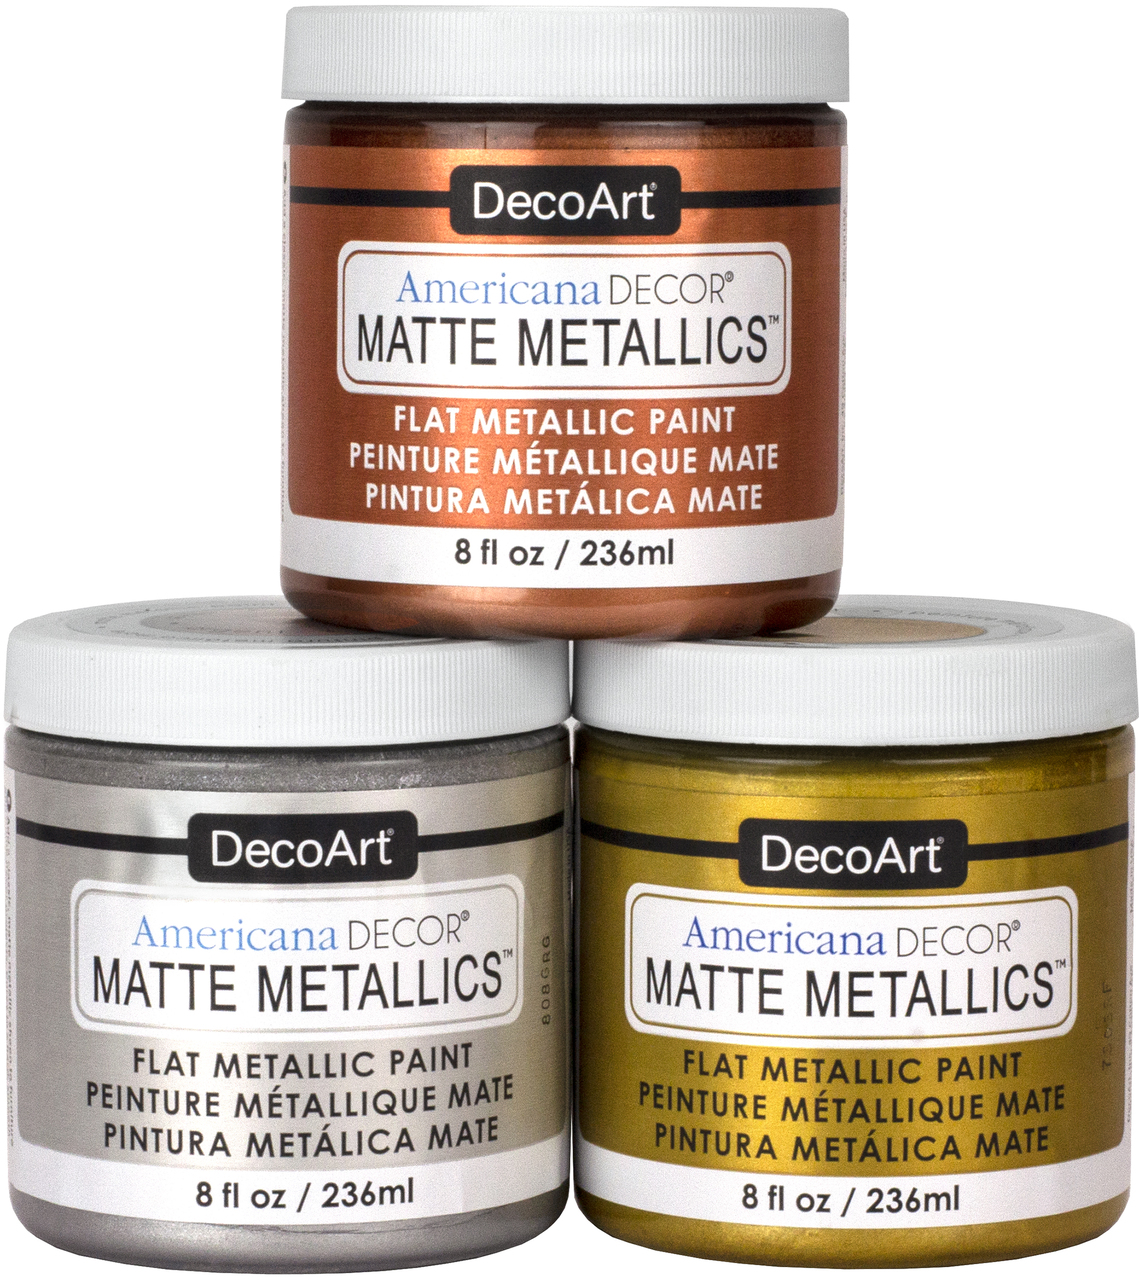 Americana Decor Matte Metallics Product Image